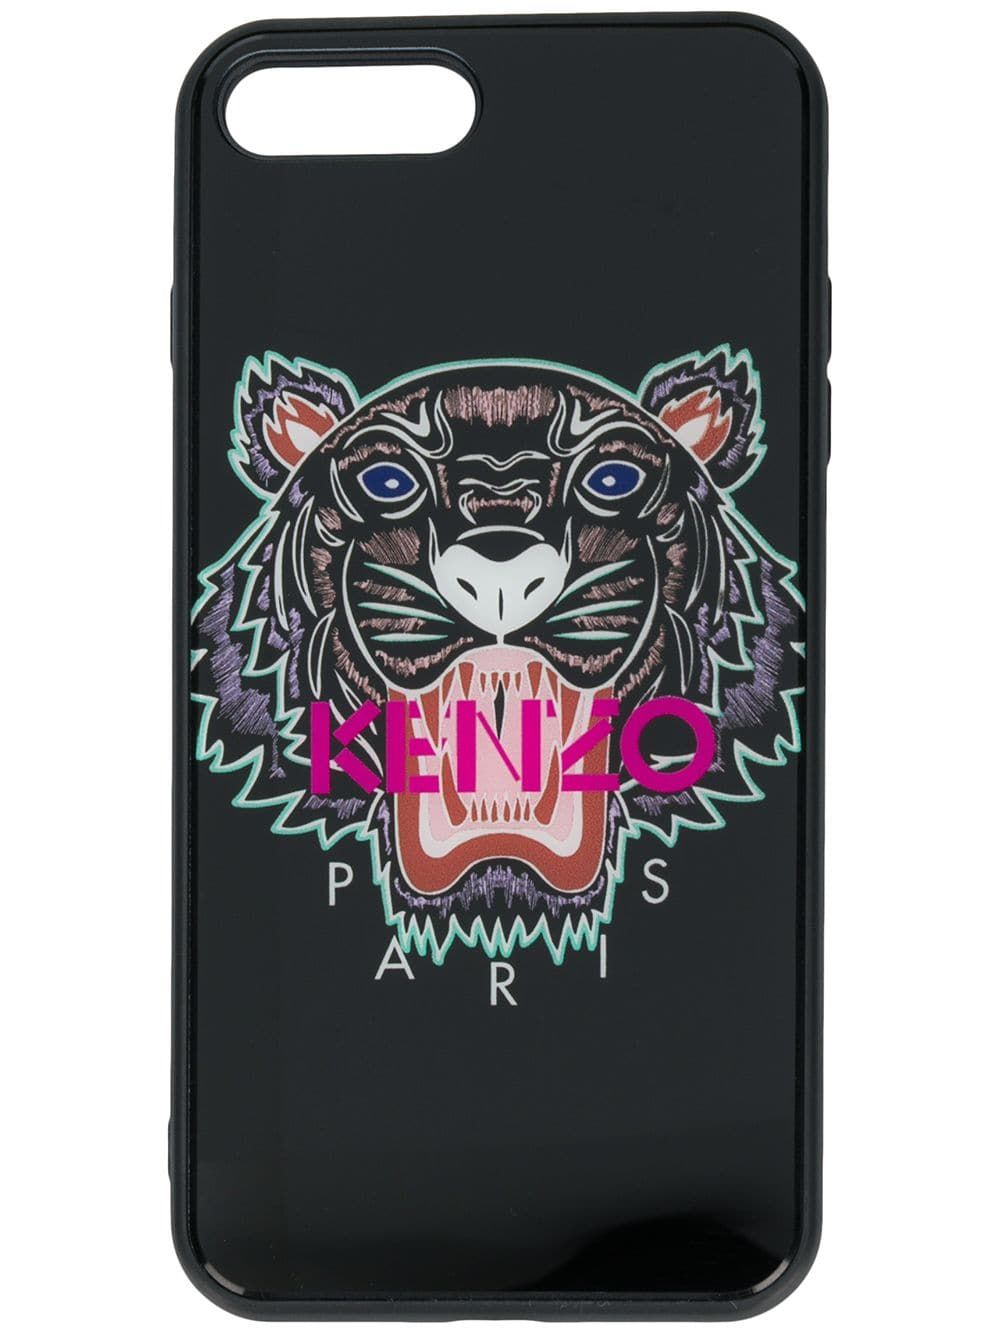 cheap for discount b6ce2 ac58e KENZO KENZO LOGO IPHONE 8 PLUS CASE - BLACK. #kenzo | Kenzo | Kenzo ...